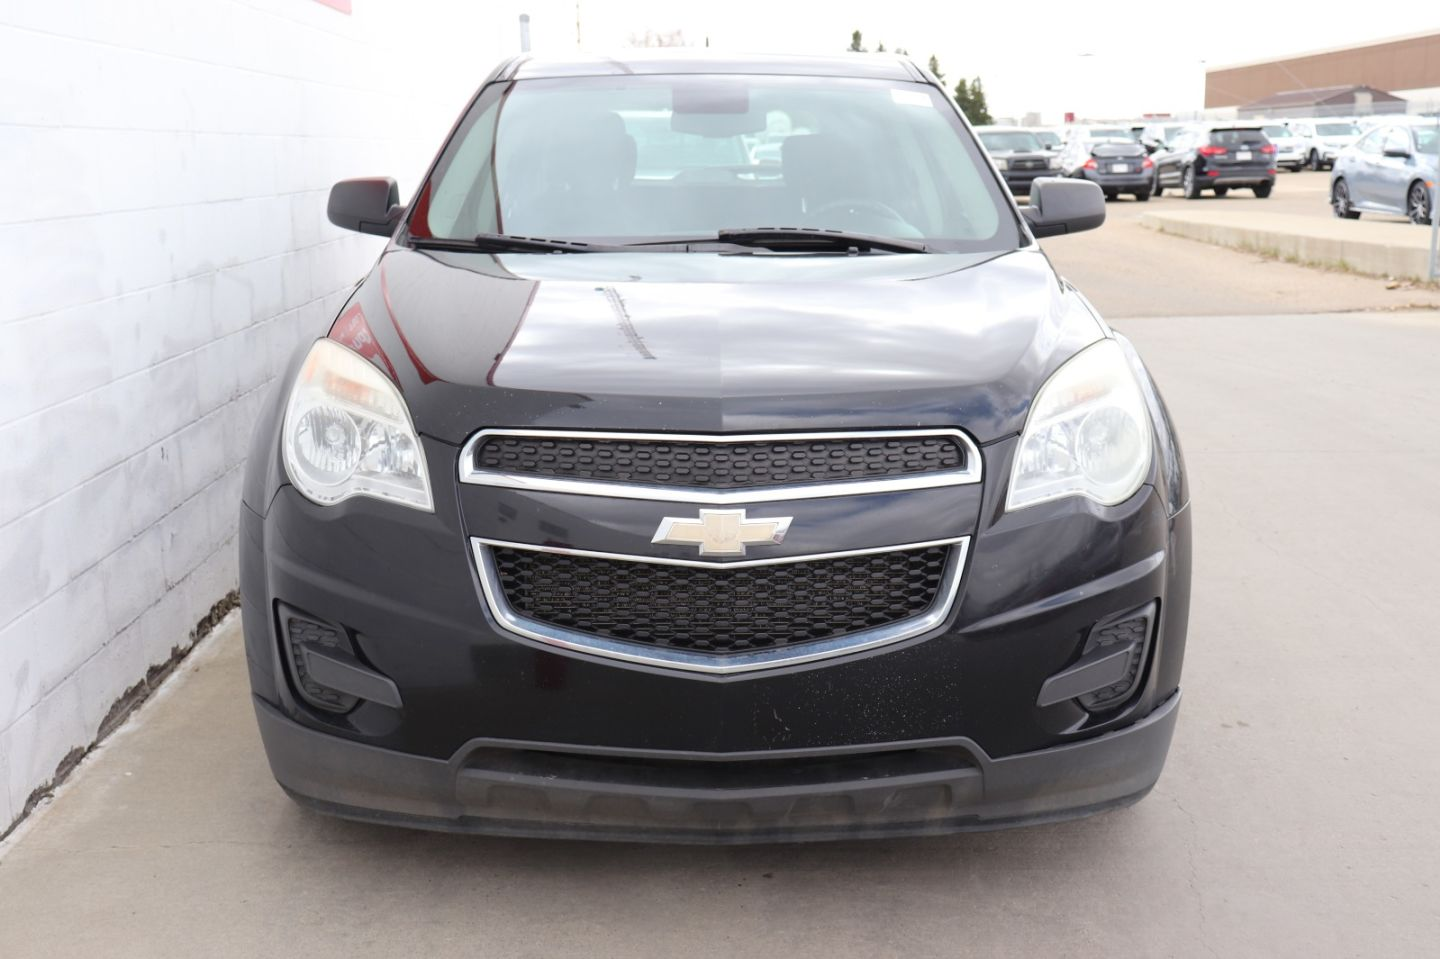 2012 Chevrolet Equinox LS for sale in Edmonton, Alberta